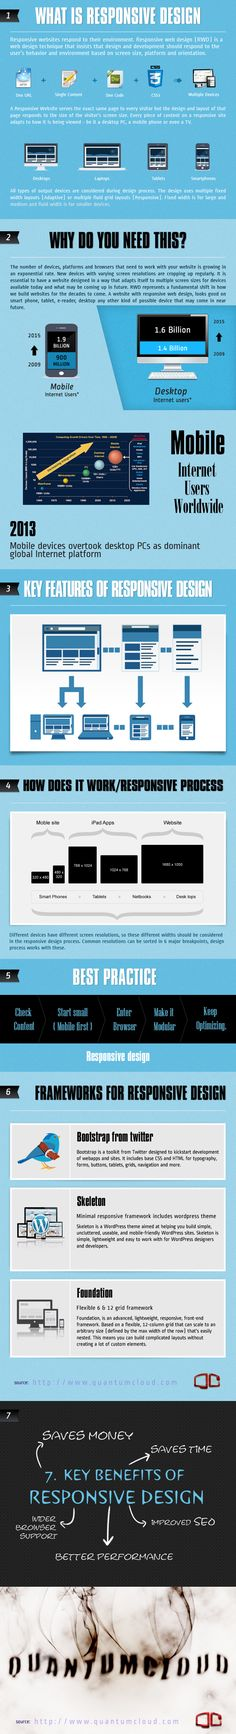 Why do you need Responsive Web Design?